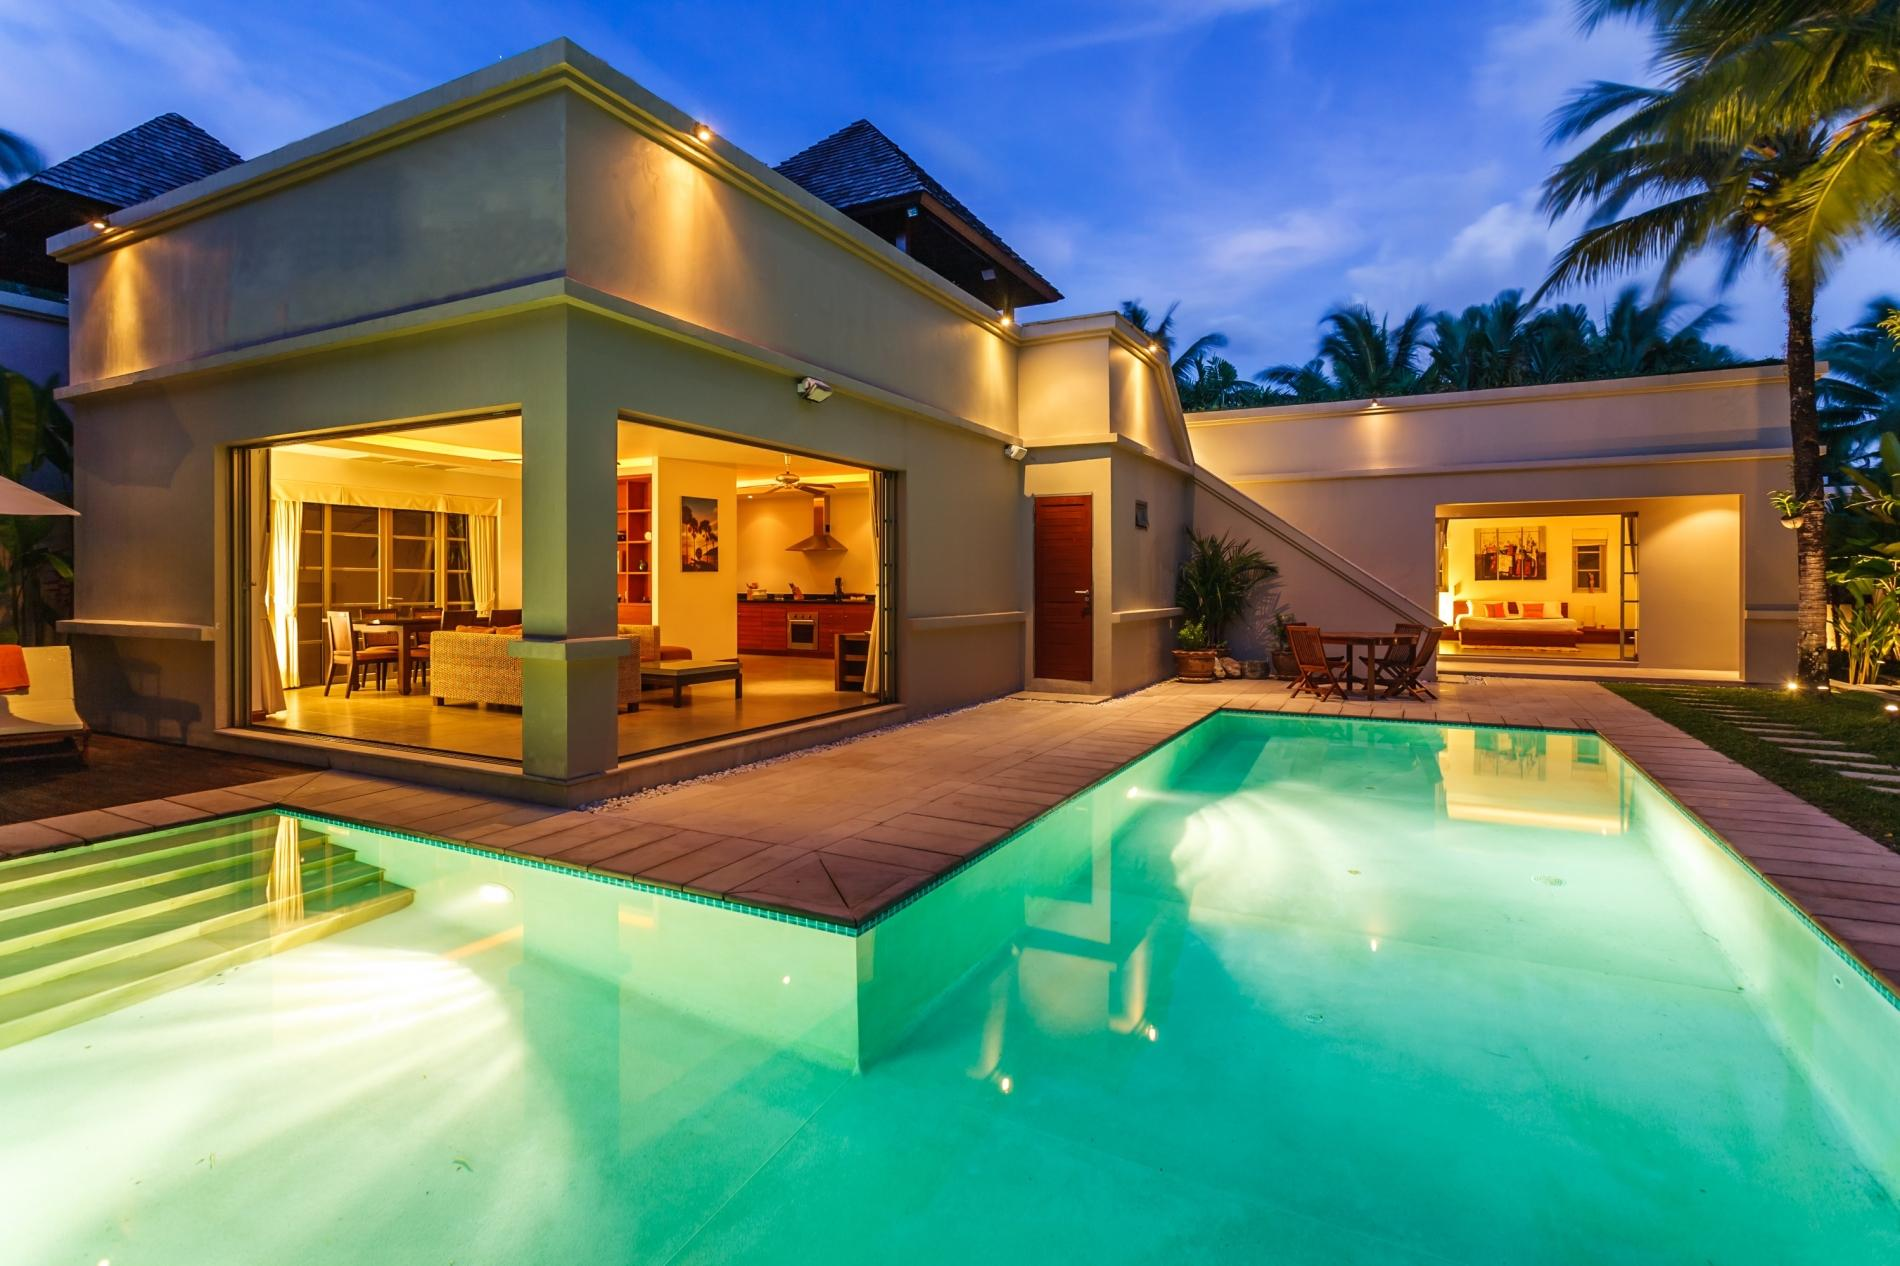 Apartment TR111 - Private pool villa in Bang Tao Residence - 3 bedrooms photo 16861269